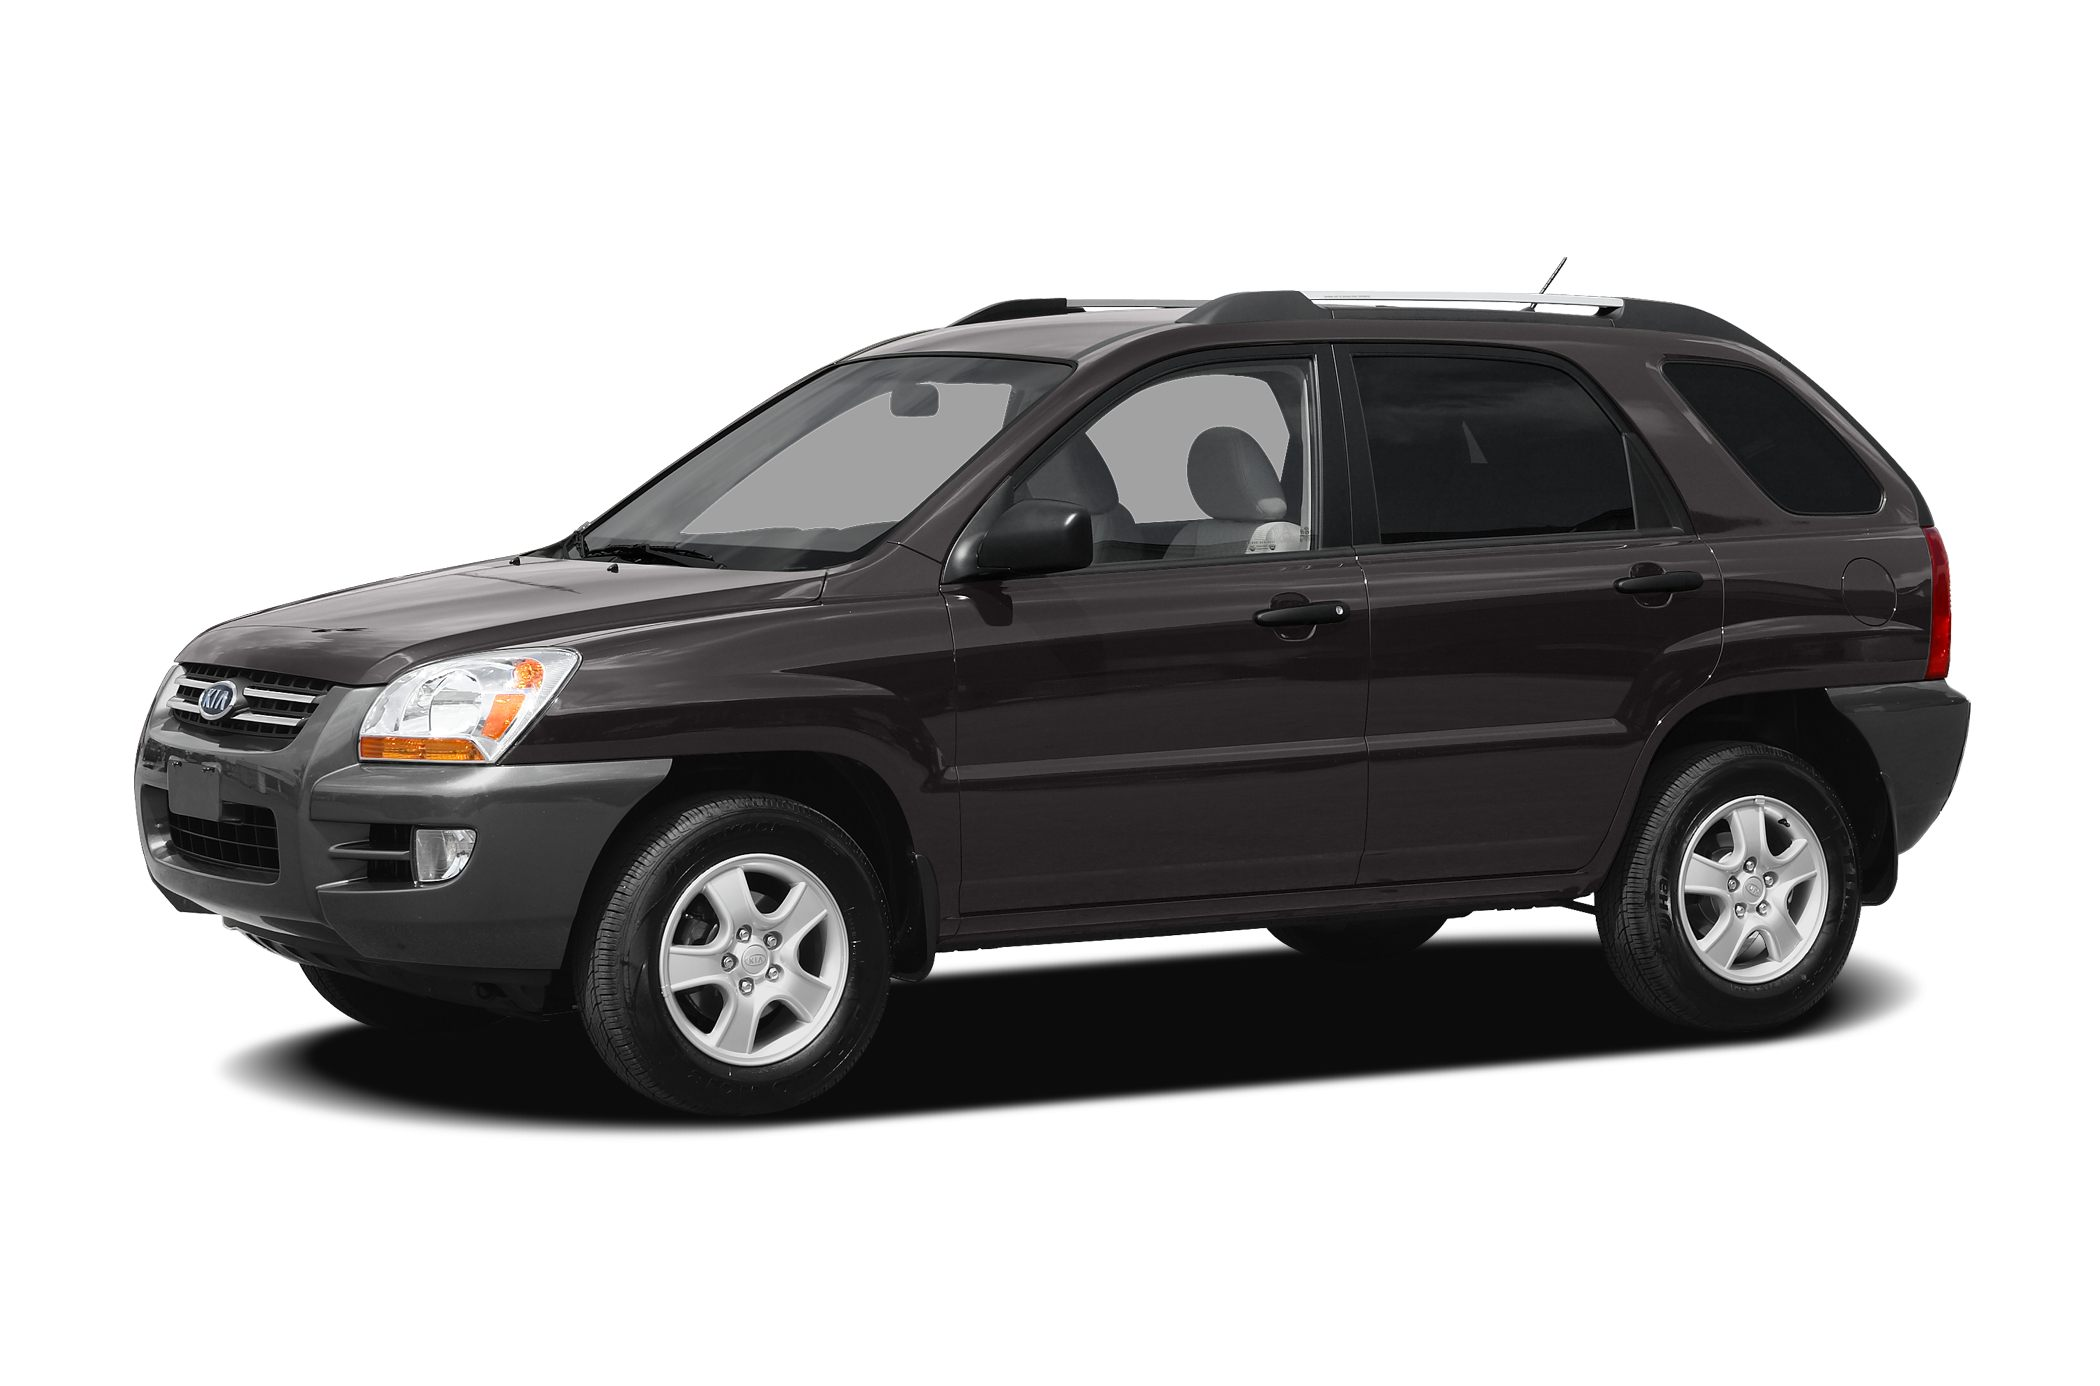 2008 Kia Sportage LX SUV for sale in Albany for $6,495 with 100,000 miles